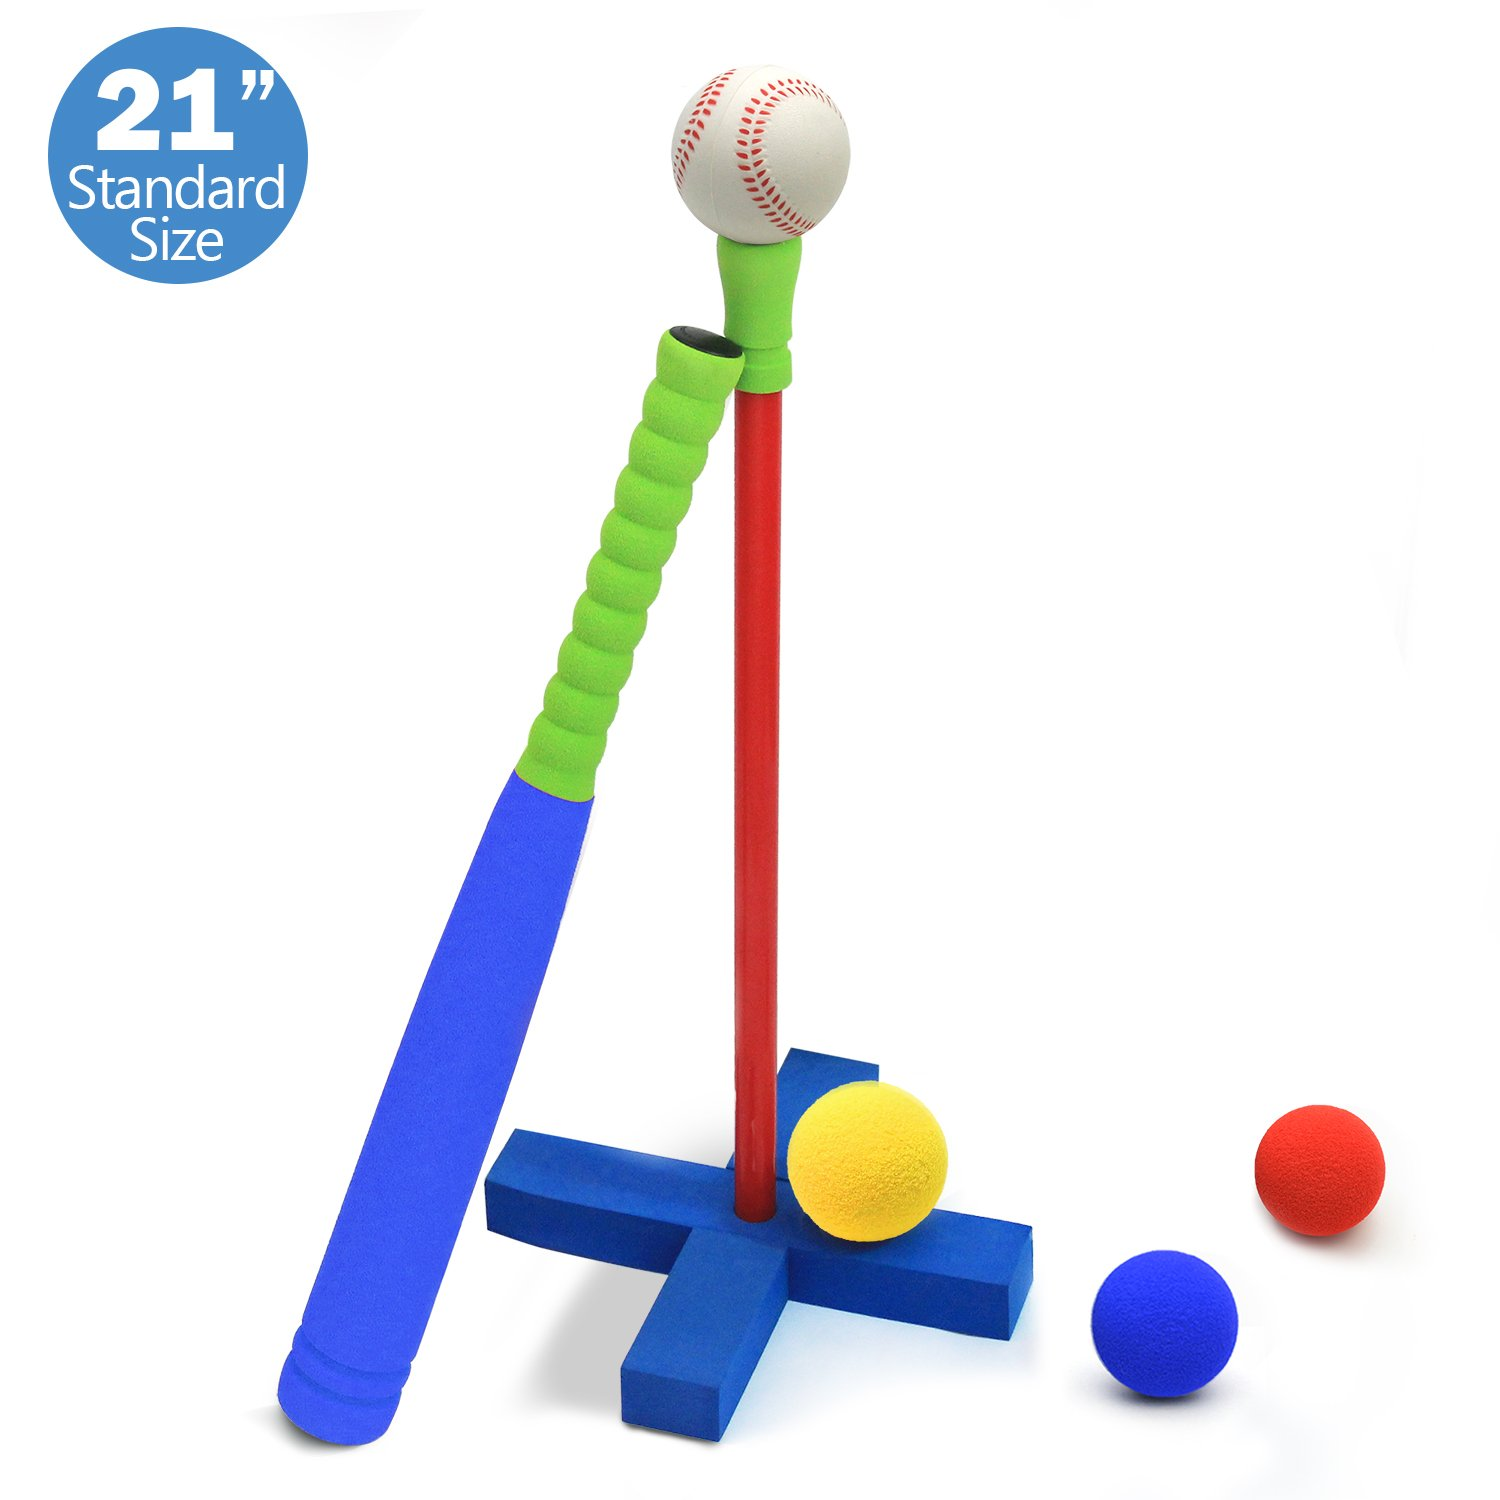 CELEMOON [Kids T-Ball Set Toy] Kids Foam T-Ball/Baseball Set Toy, 3 Different Sized Balls, Carry/Organize Bag Included, for Kids Over 3 Years Old, Blue